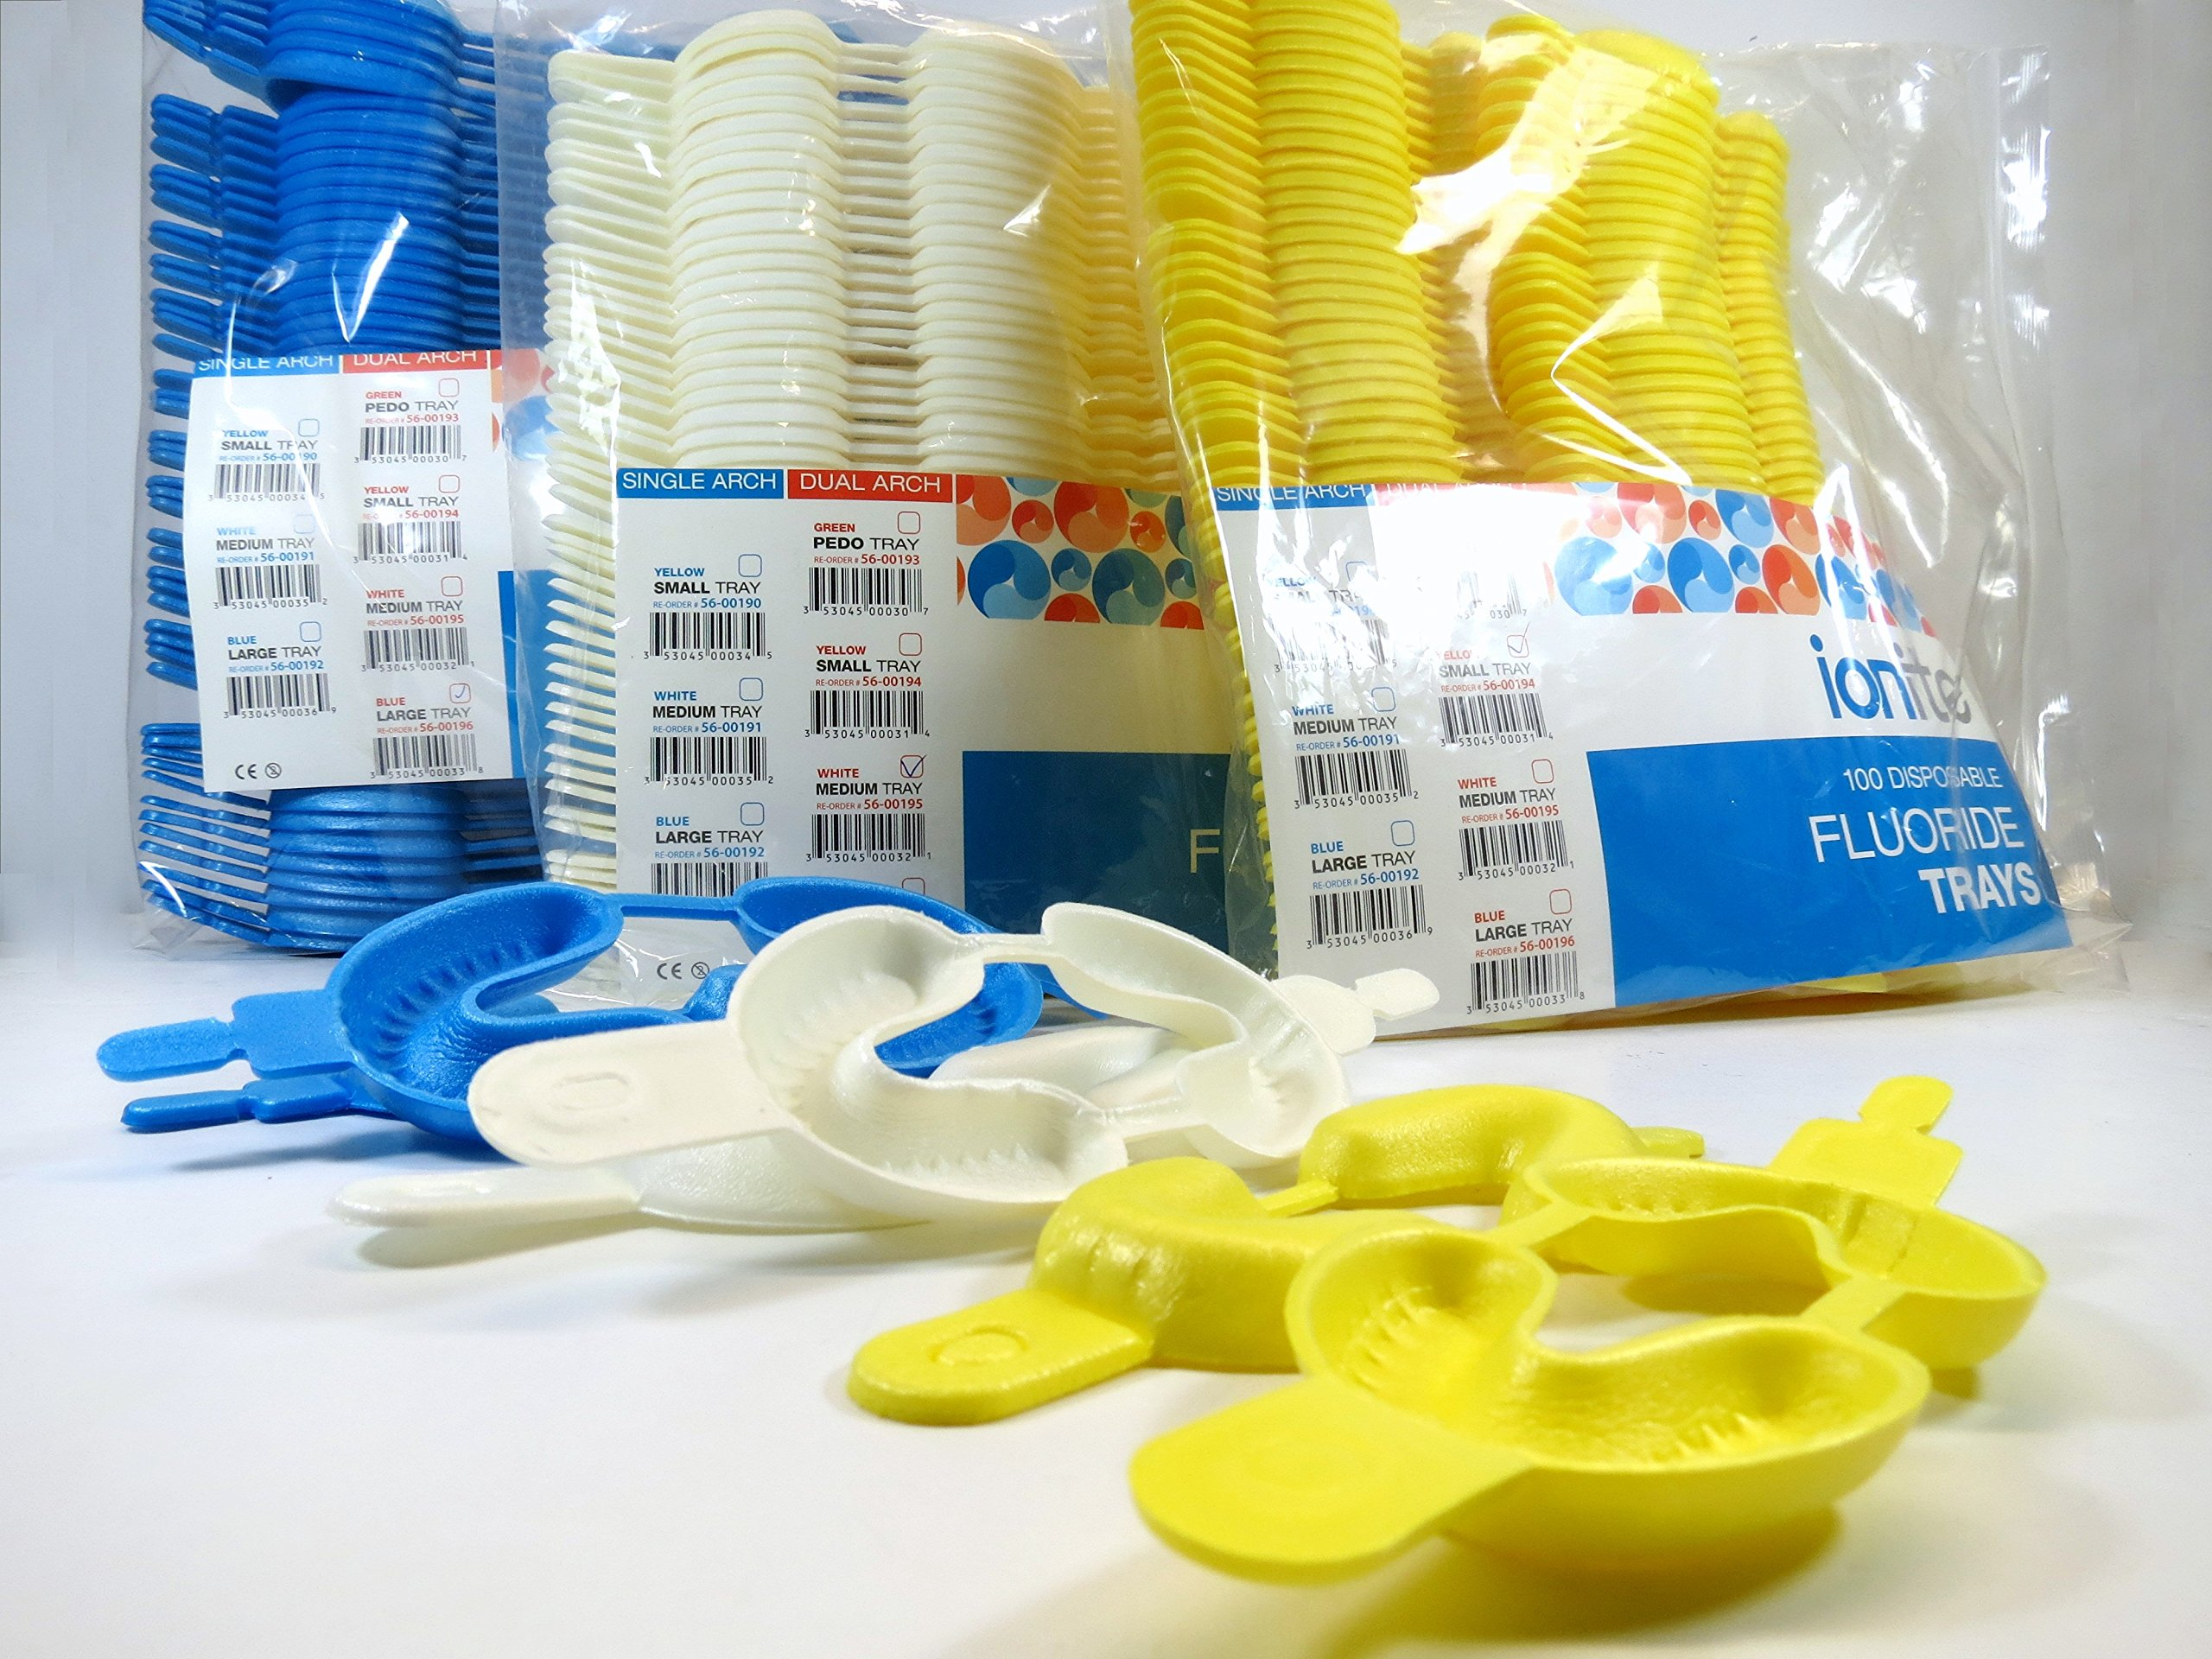 300x Assorted Fluoride Arch Foam Trays Dental Dual SMALL / MEDIUM / LARGE Pack Disposable Cubetas